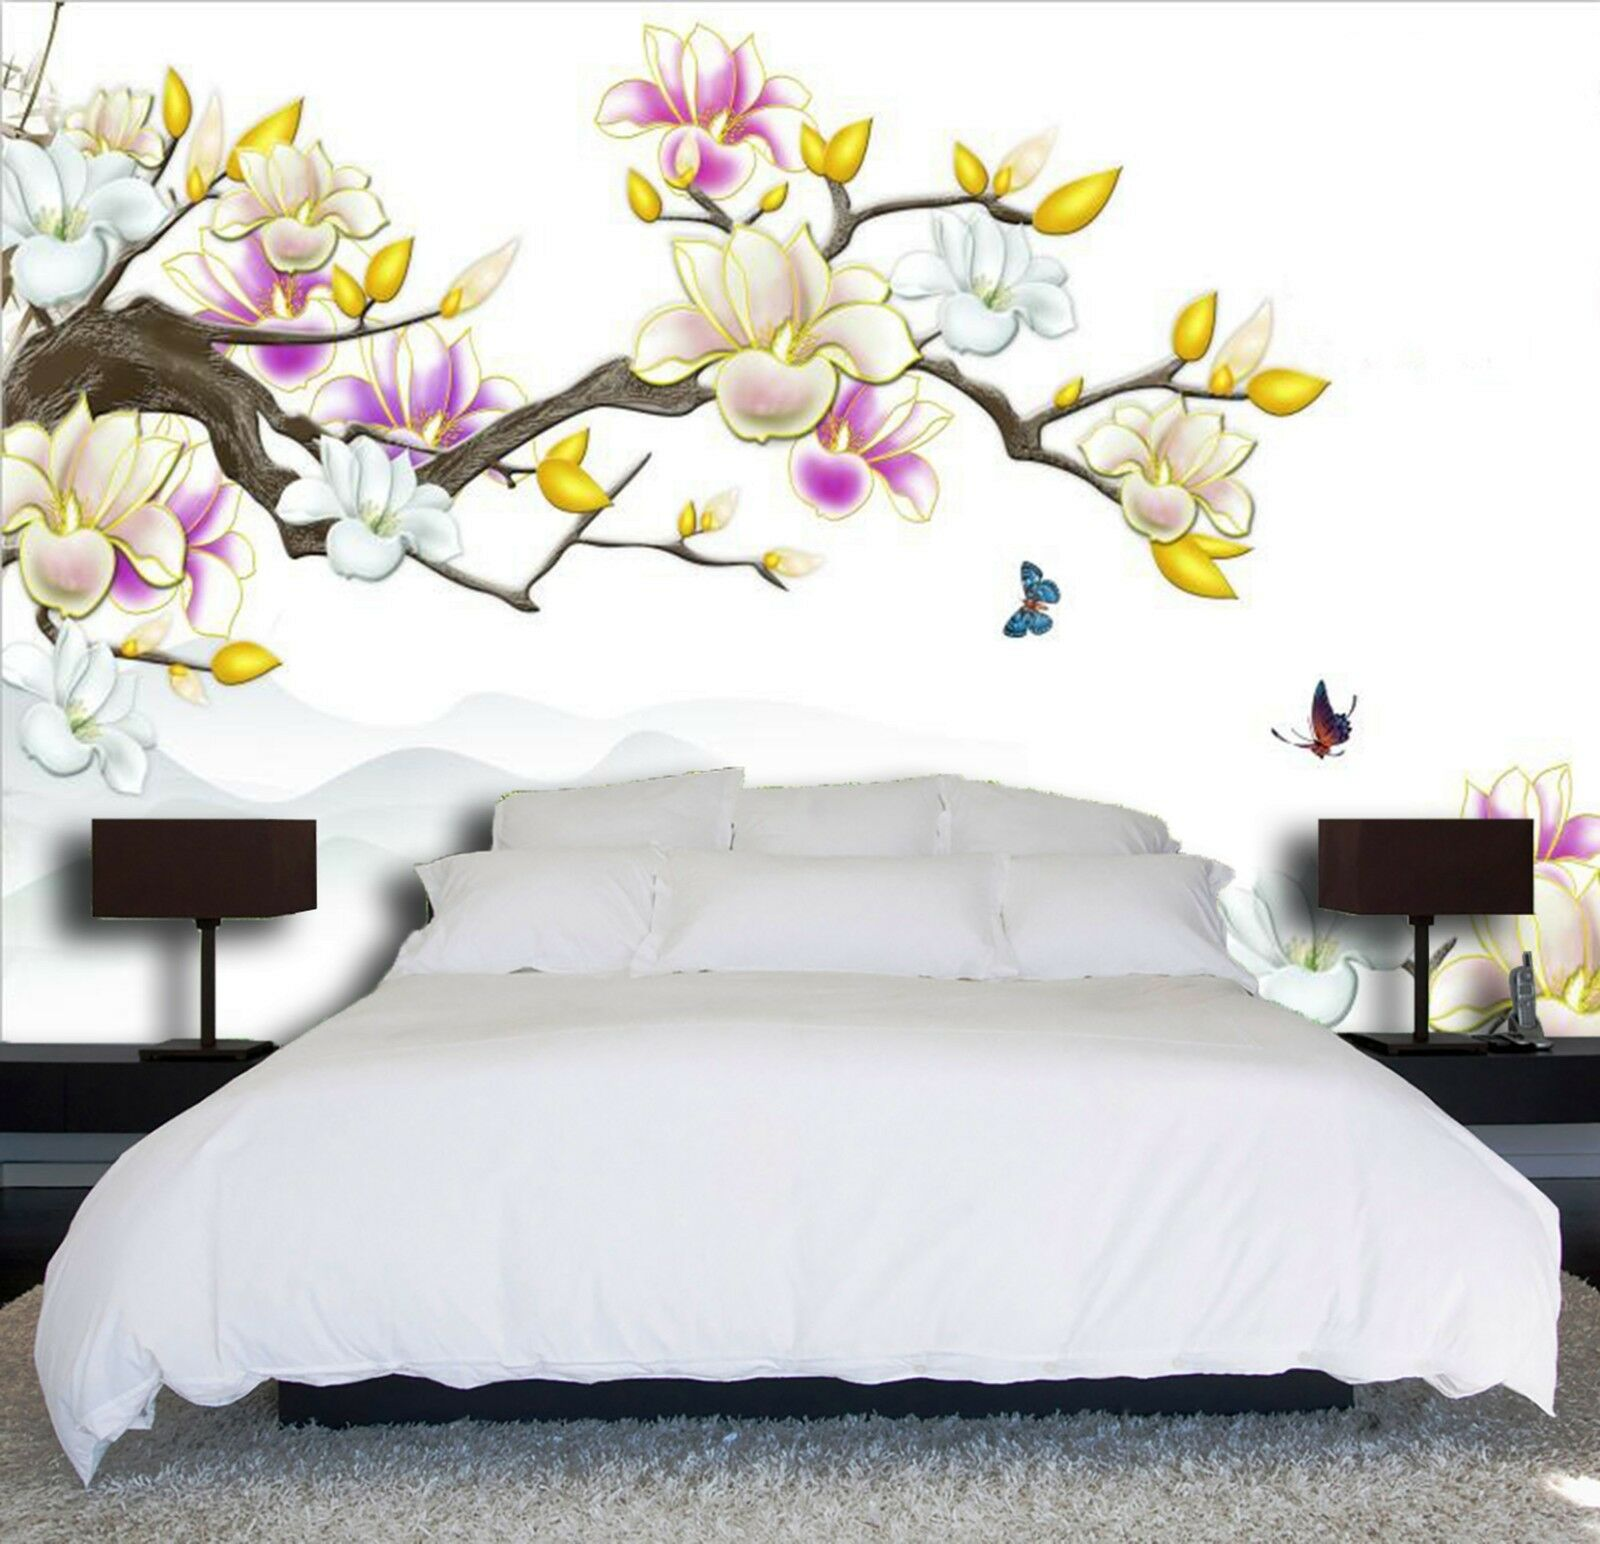 3D Peach blossom 6889 Wall Paper Wall Print Decal Wall Indoor Murals Wall US